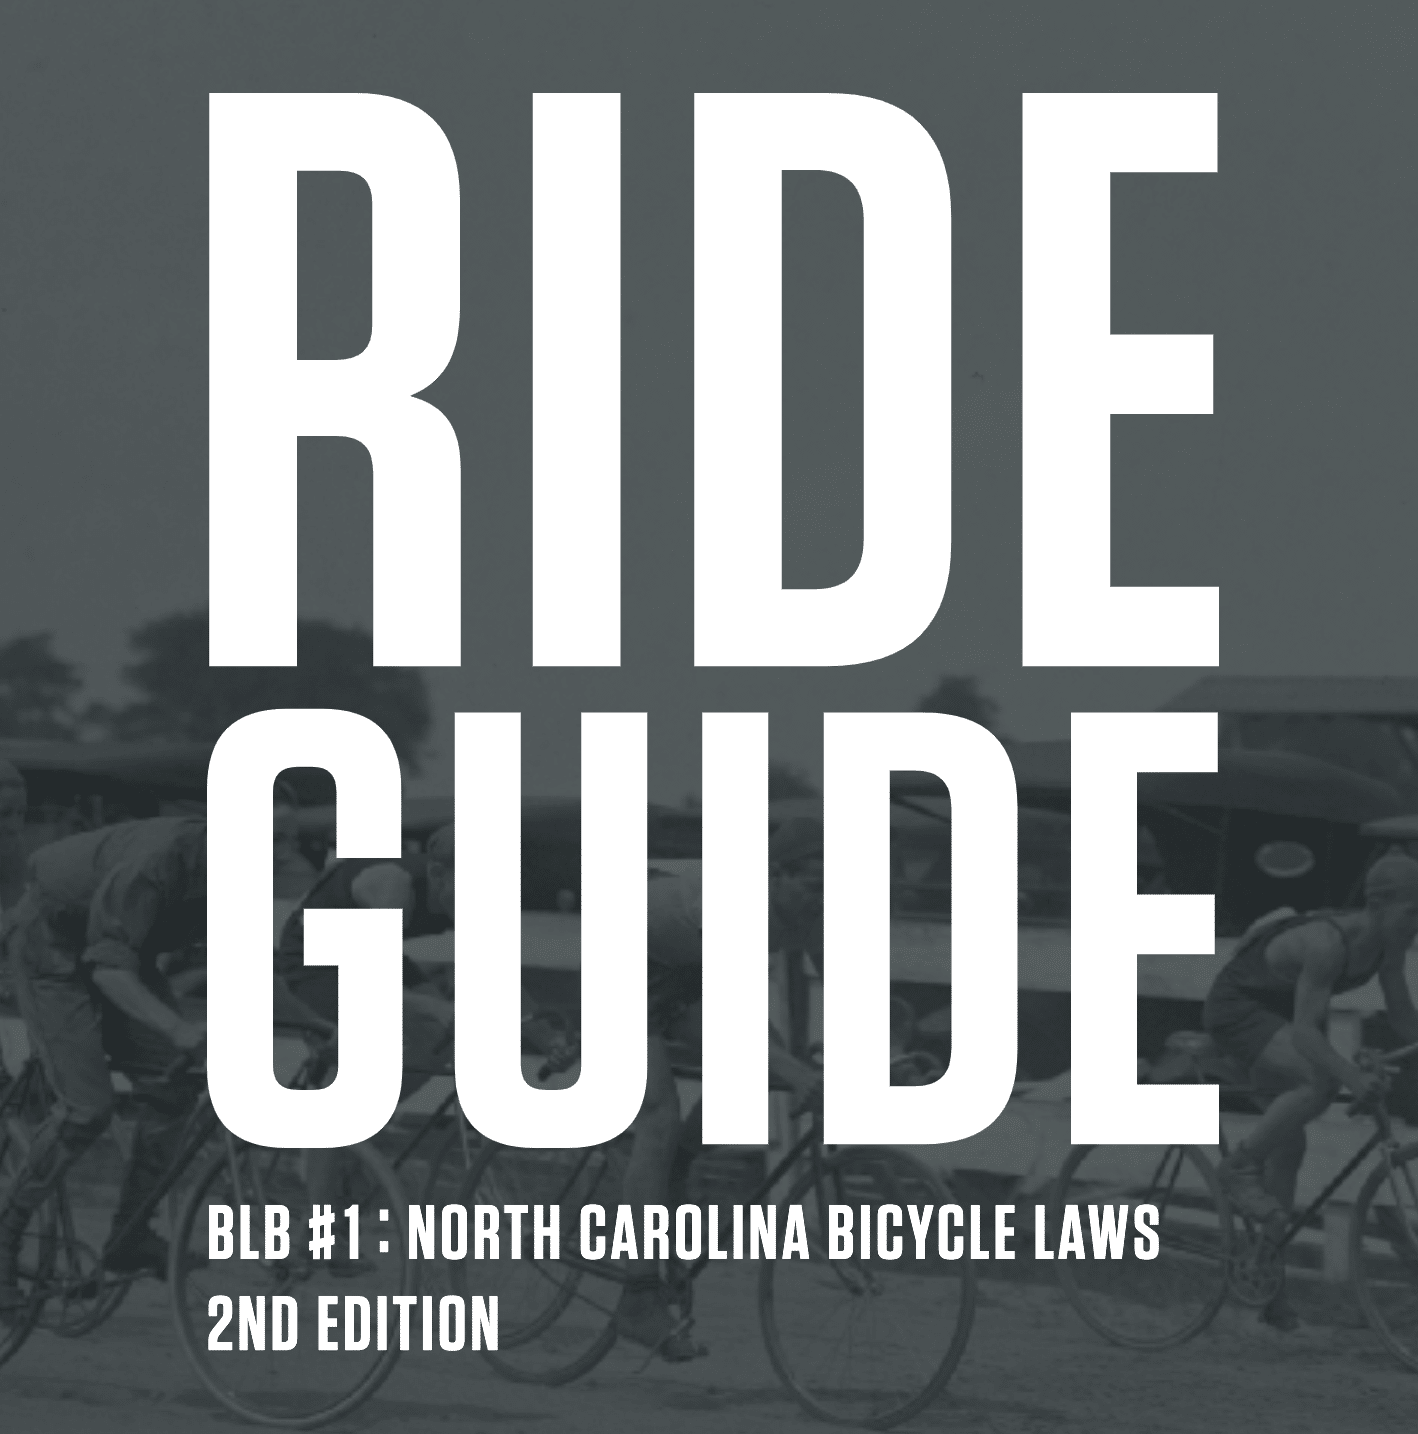 NC Bike Law Book